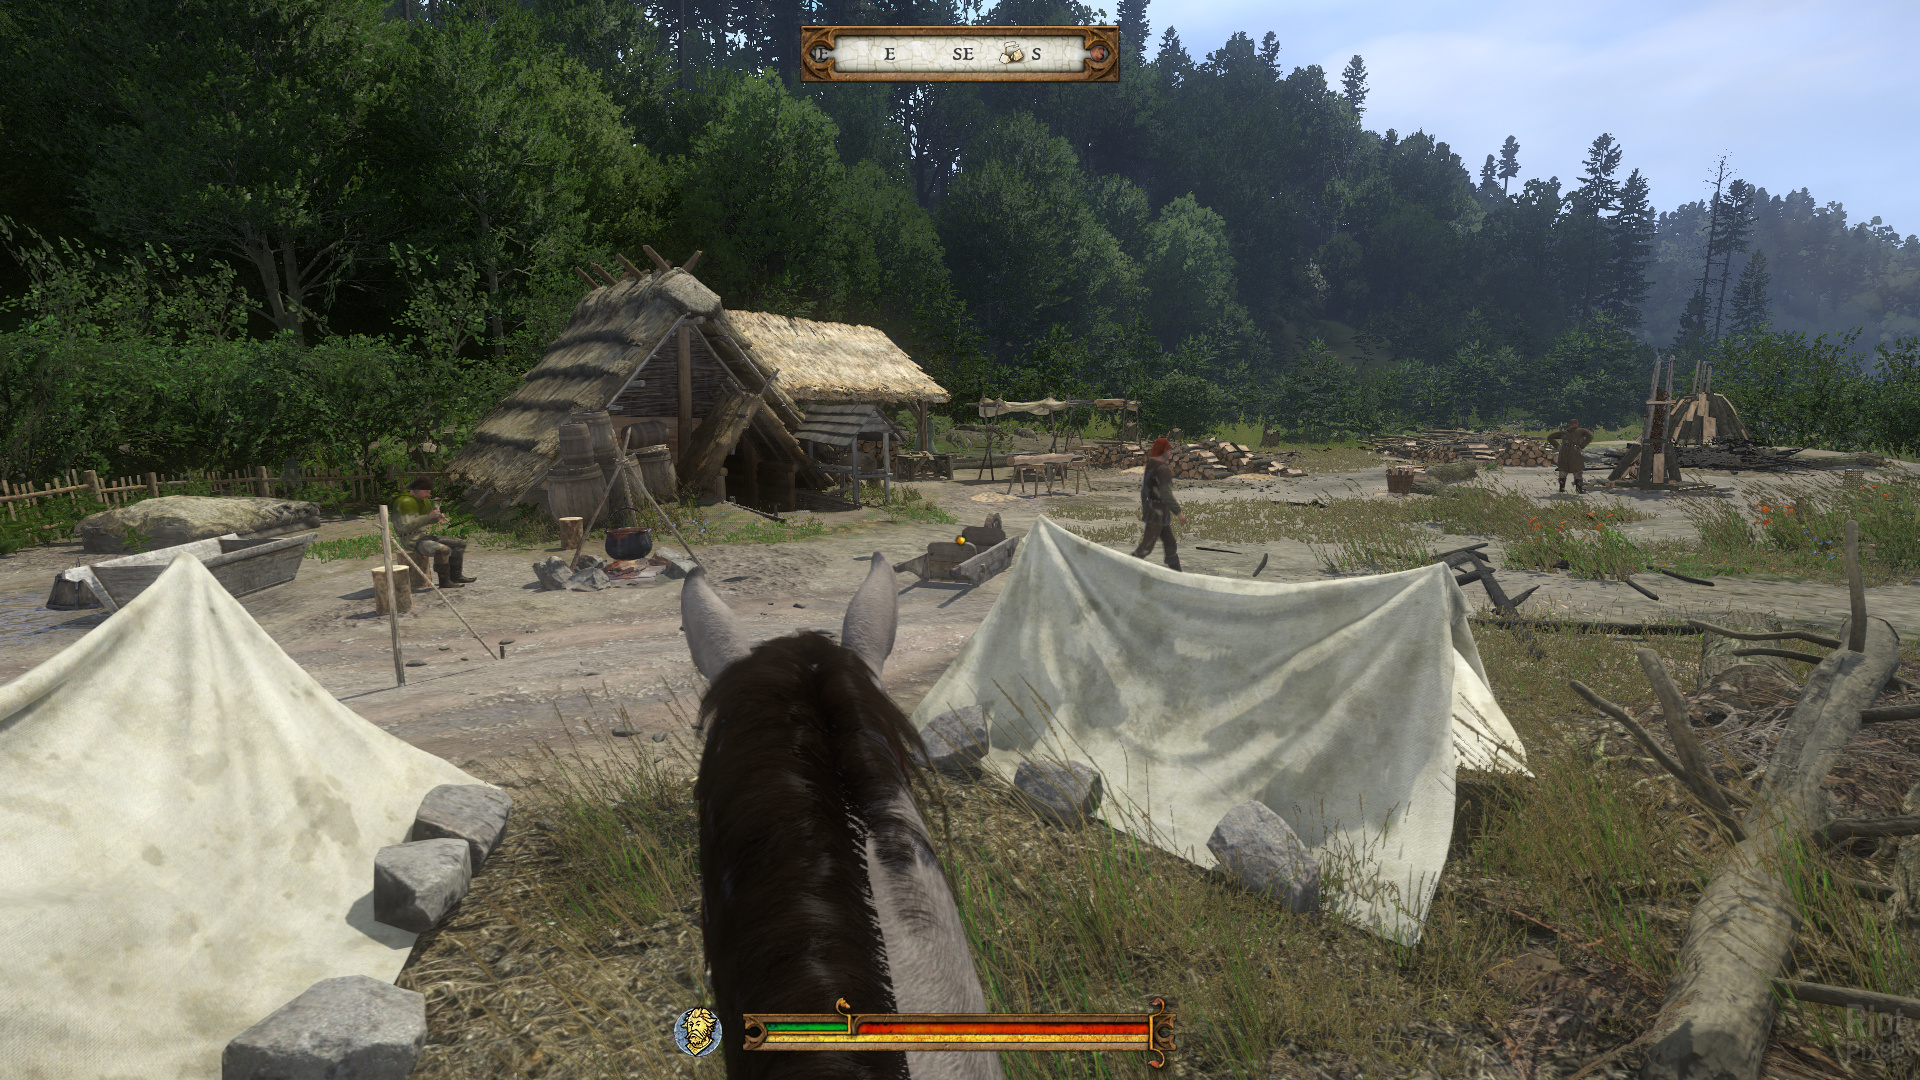 kcd_06